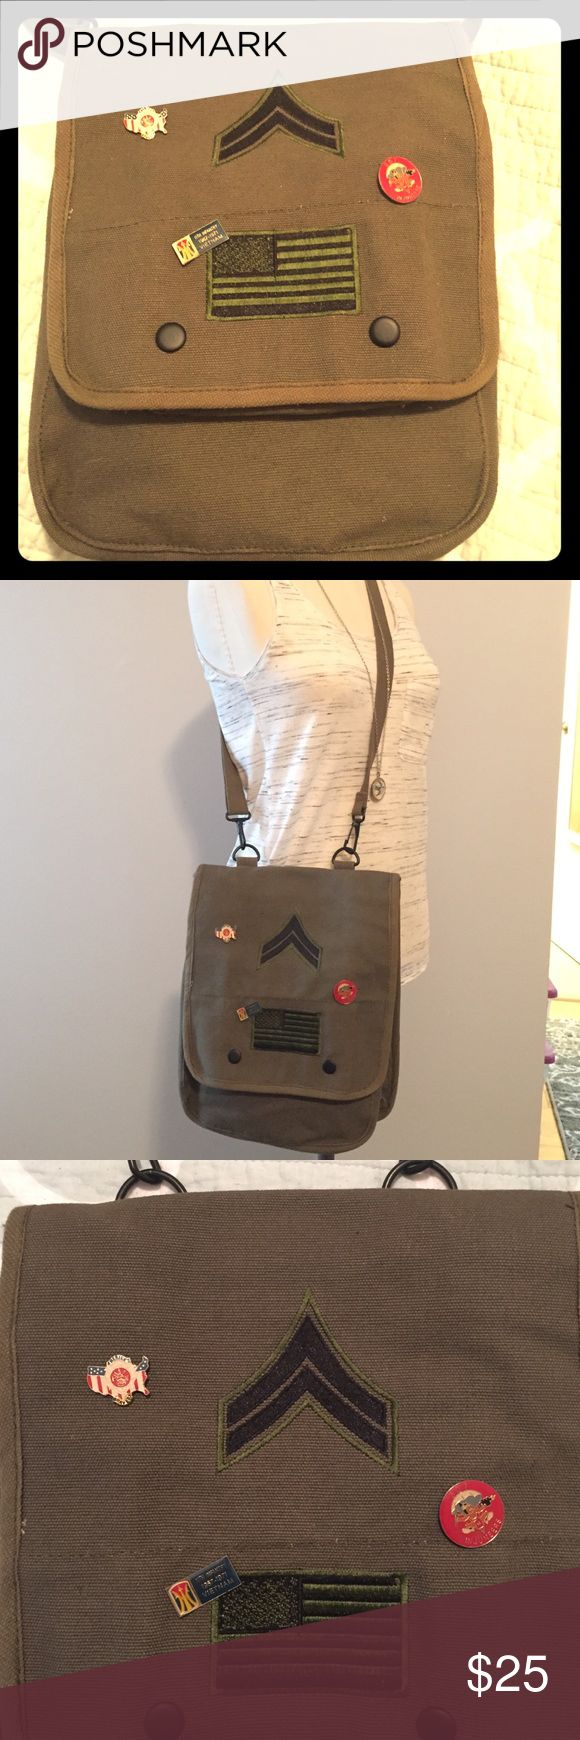 """Military Chic- cross body bag Authentic military cross body bag.  Makes a super cute purse!! Olive green canvas with authentic military patches and pins on front.  Adjustable woven strap measuring 44"""" in total length.  Fold over flap closure with double snap.  One large interior pocket and one smaller front pocket with elastic holders (great for pens/lipgloss).  Purse is 10"""" high, 8"""" across, 4"""" width.  Excellent condition, purchased at military supply store but never used.  No trades. Bags…"""